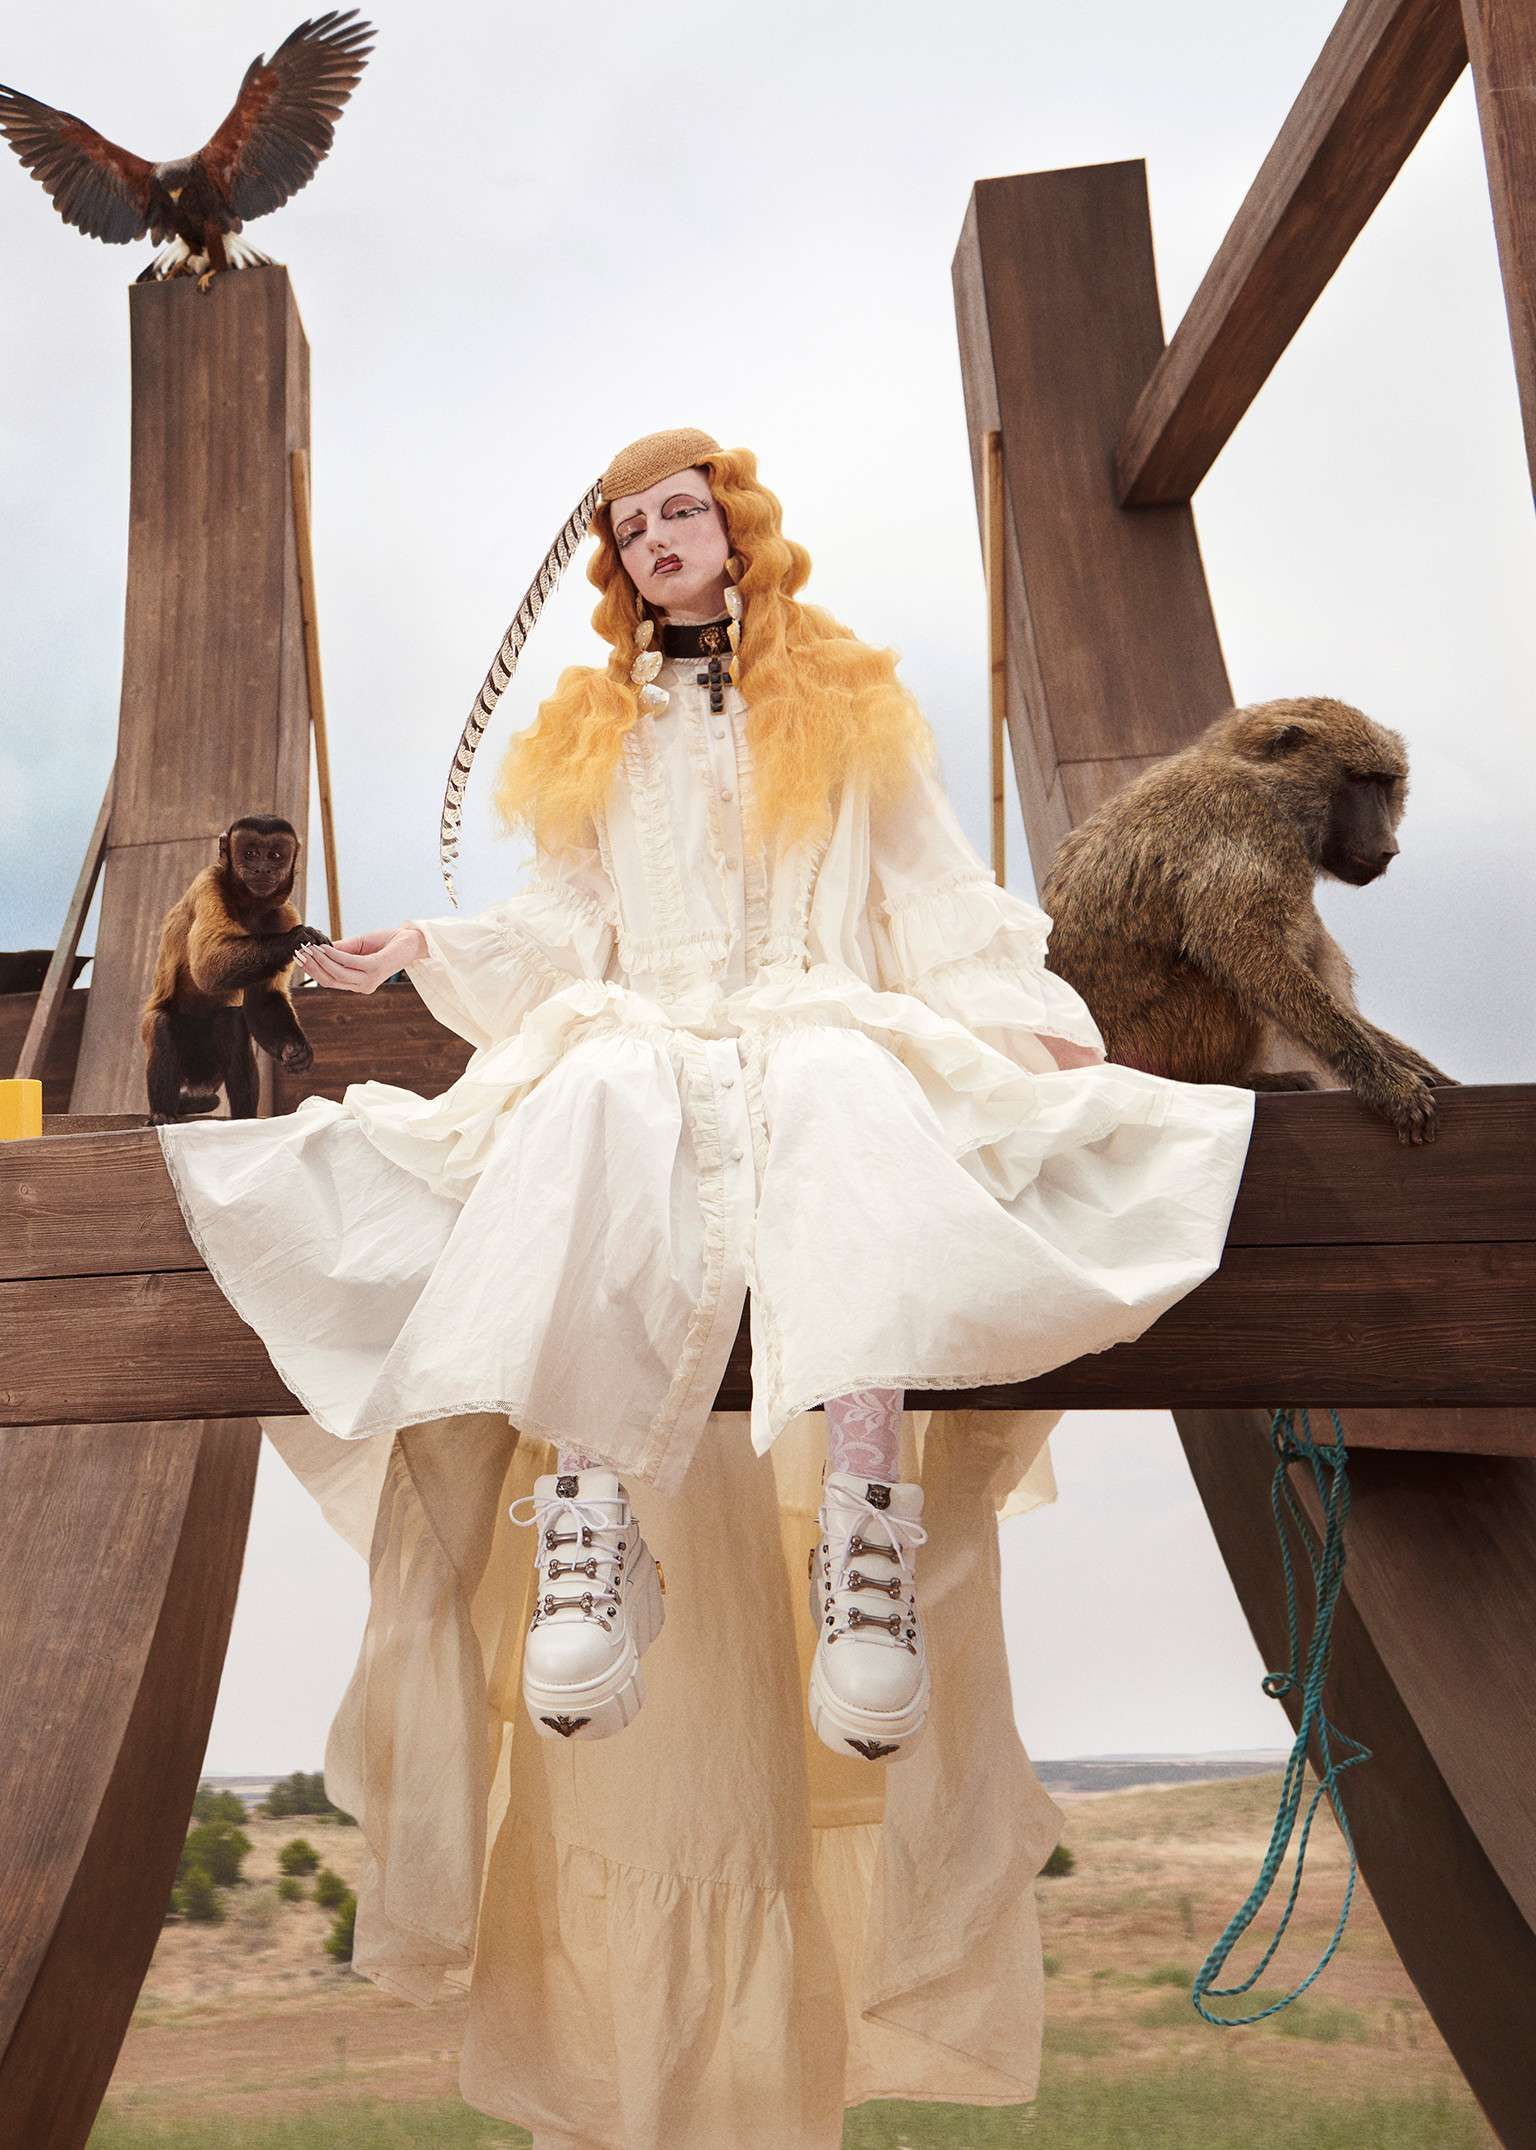 8d75b5b6943d Gucci Gothic: the Cruise 2019 campaign features young farmer-punks in a  surreal, mythological world.Gucci Gothic